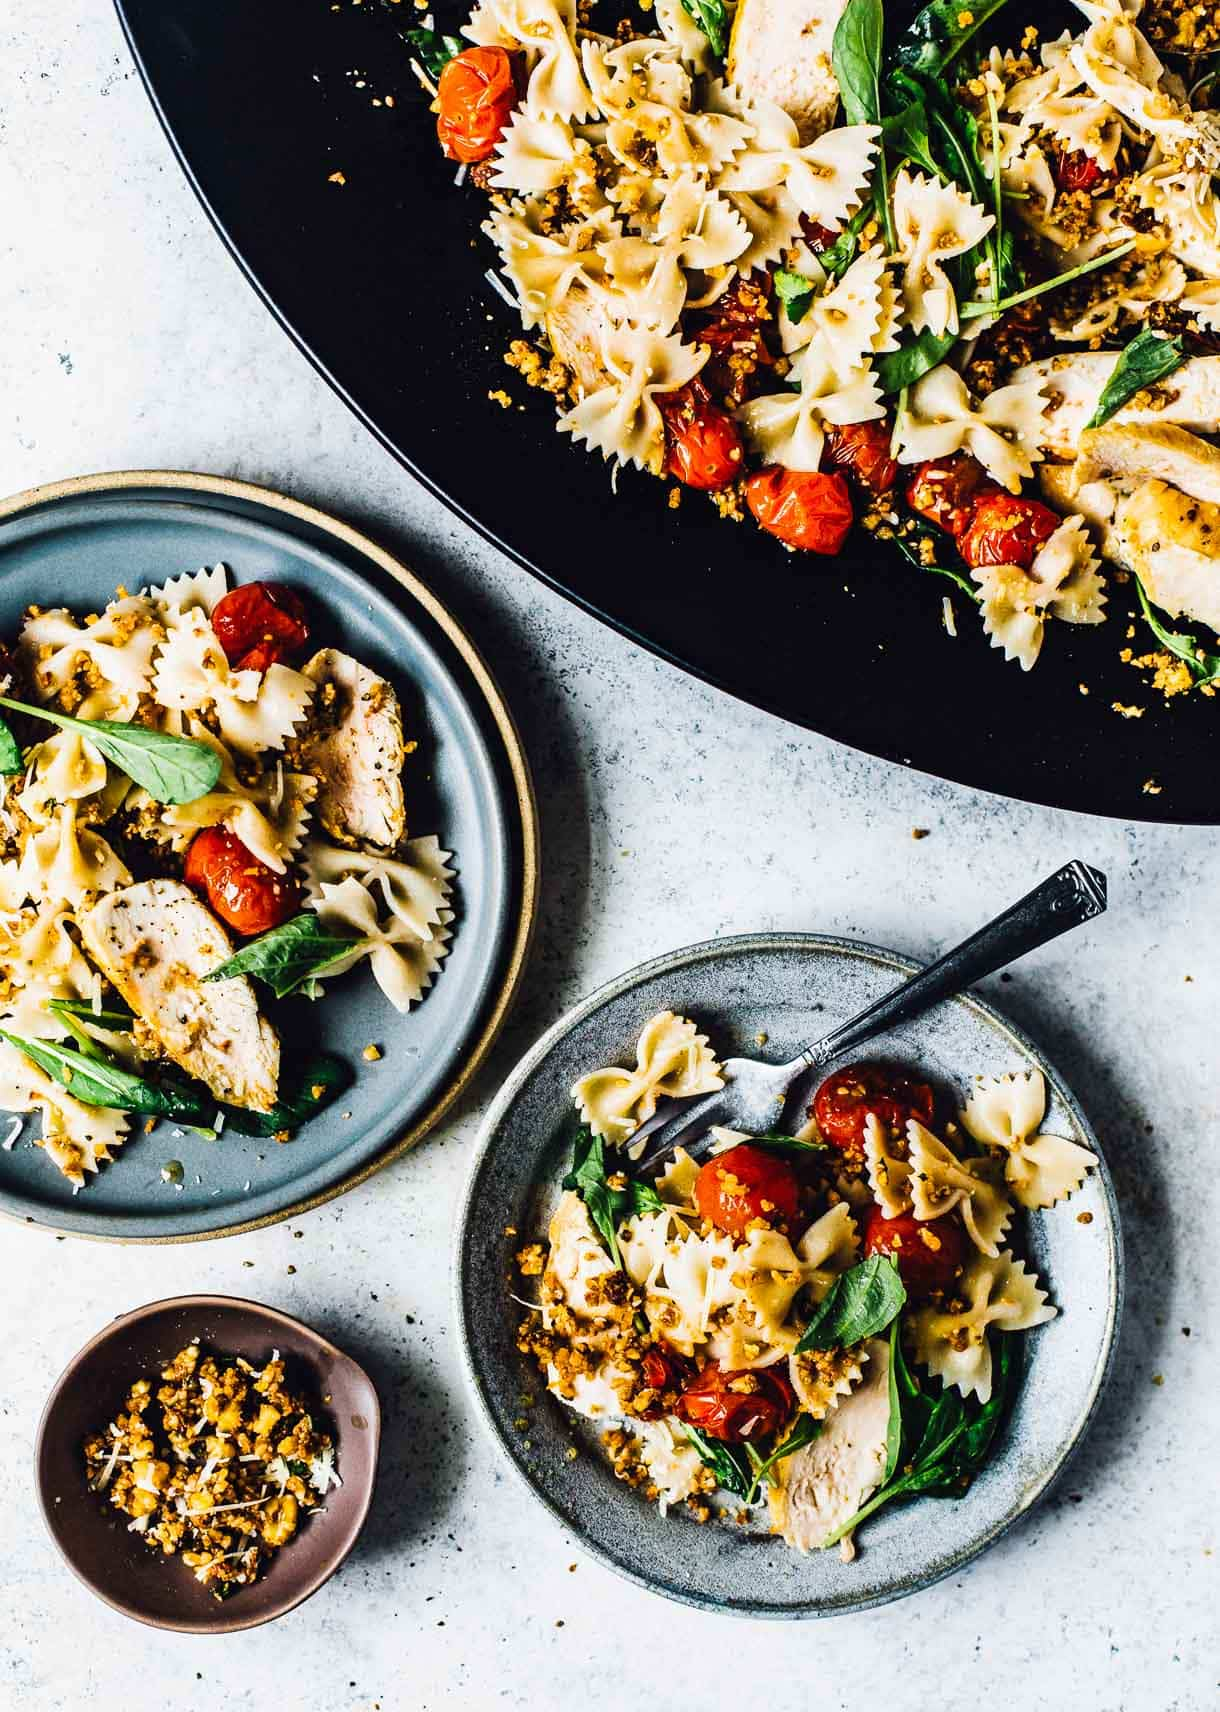 Healthy Chicken Pasta Salad with Walnut Crumble